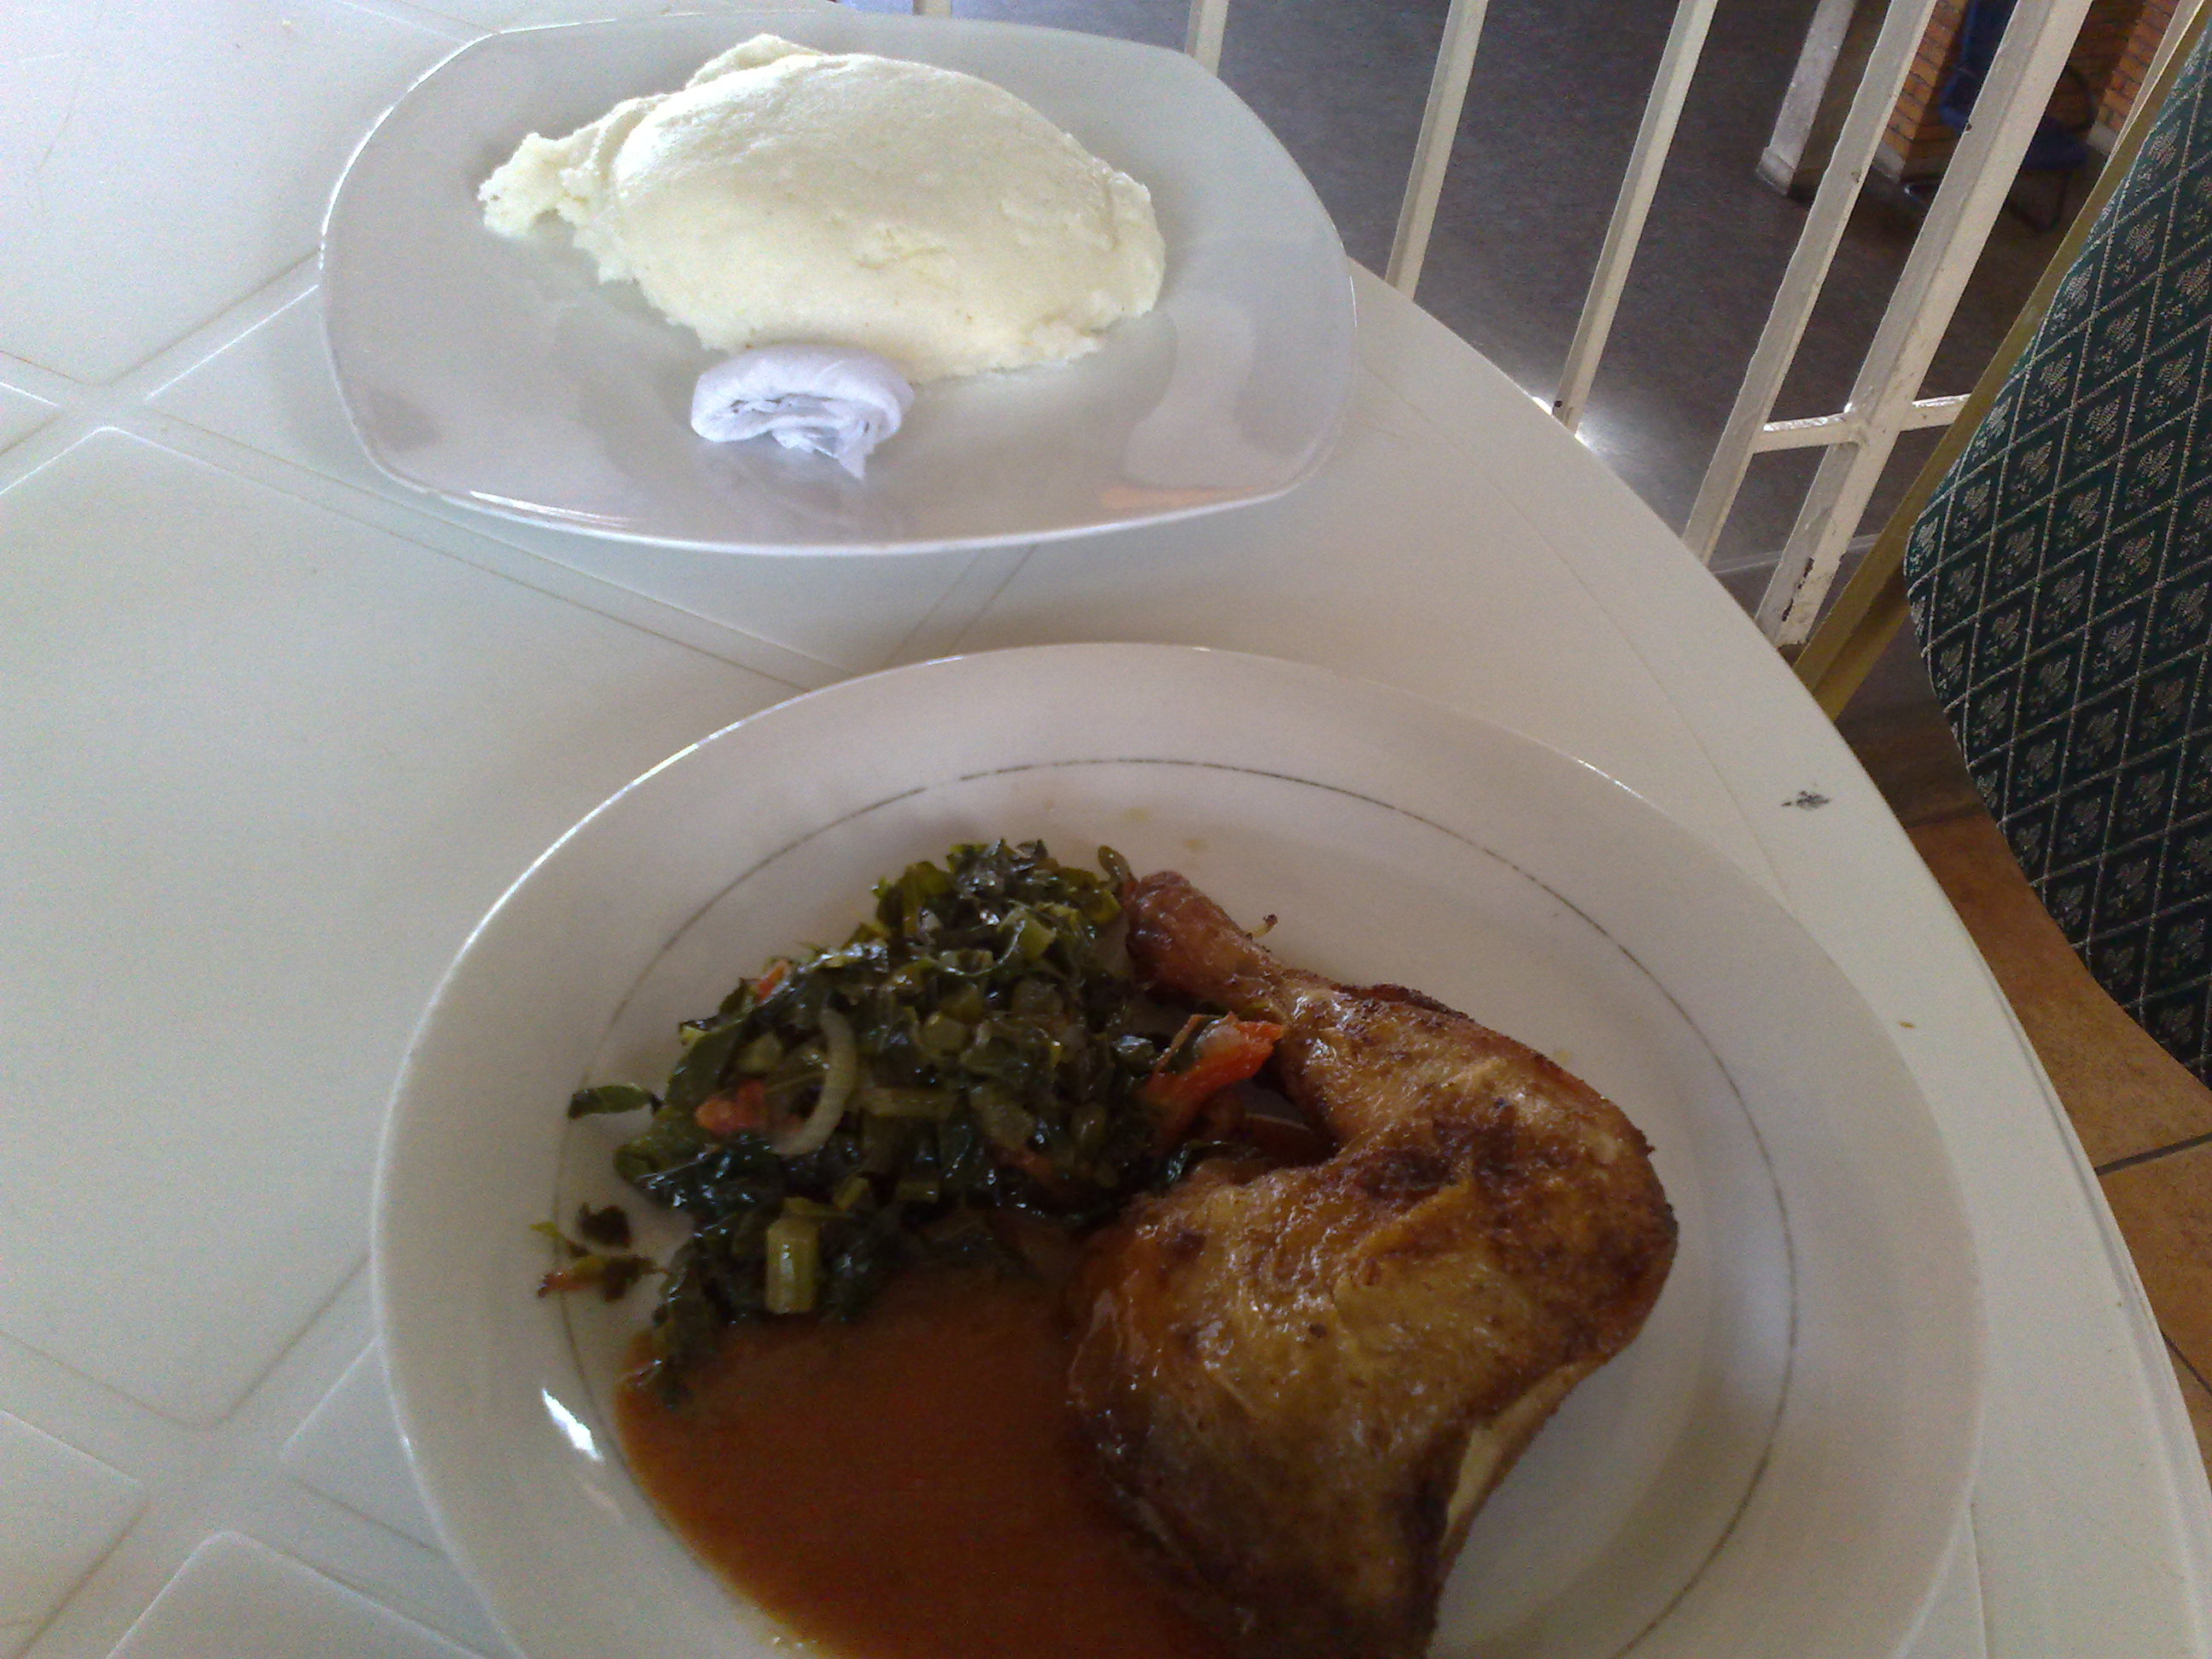 Nshima recipes wiki fandom powered by wikia nshimachickenandsomethingelse 1855 forumfinder Image collections